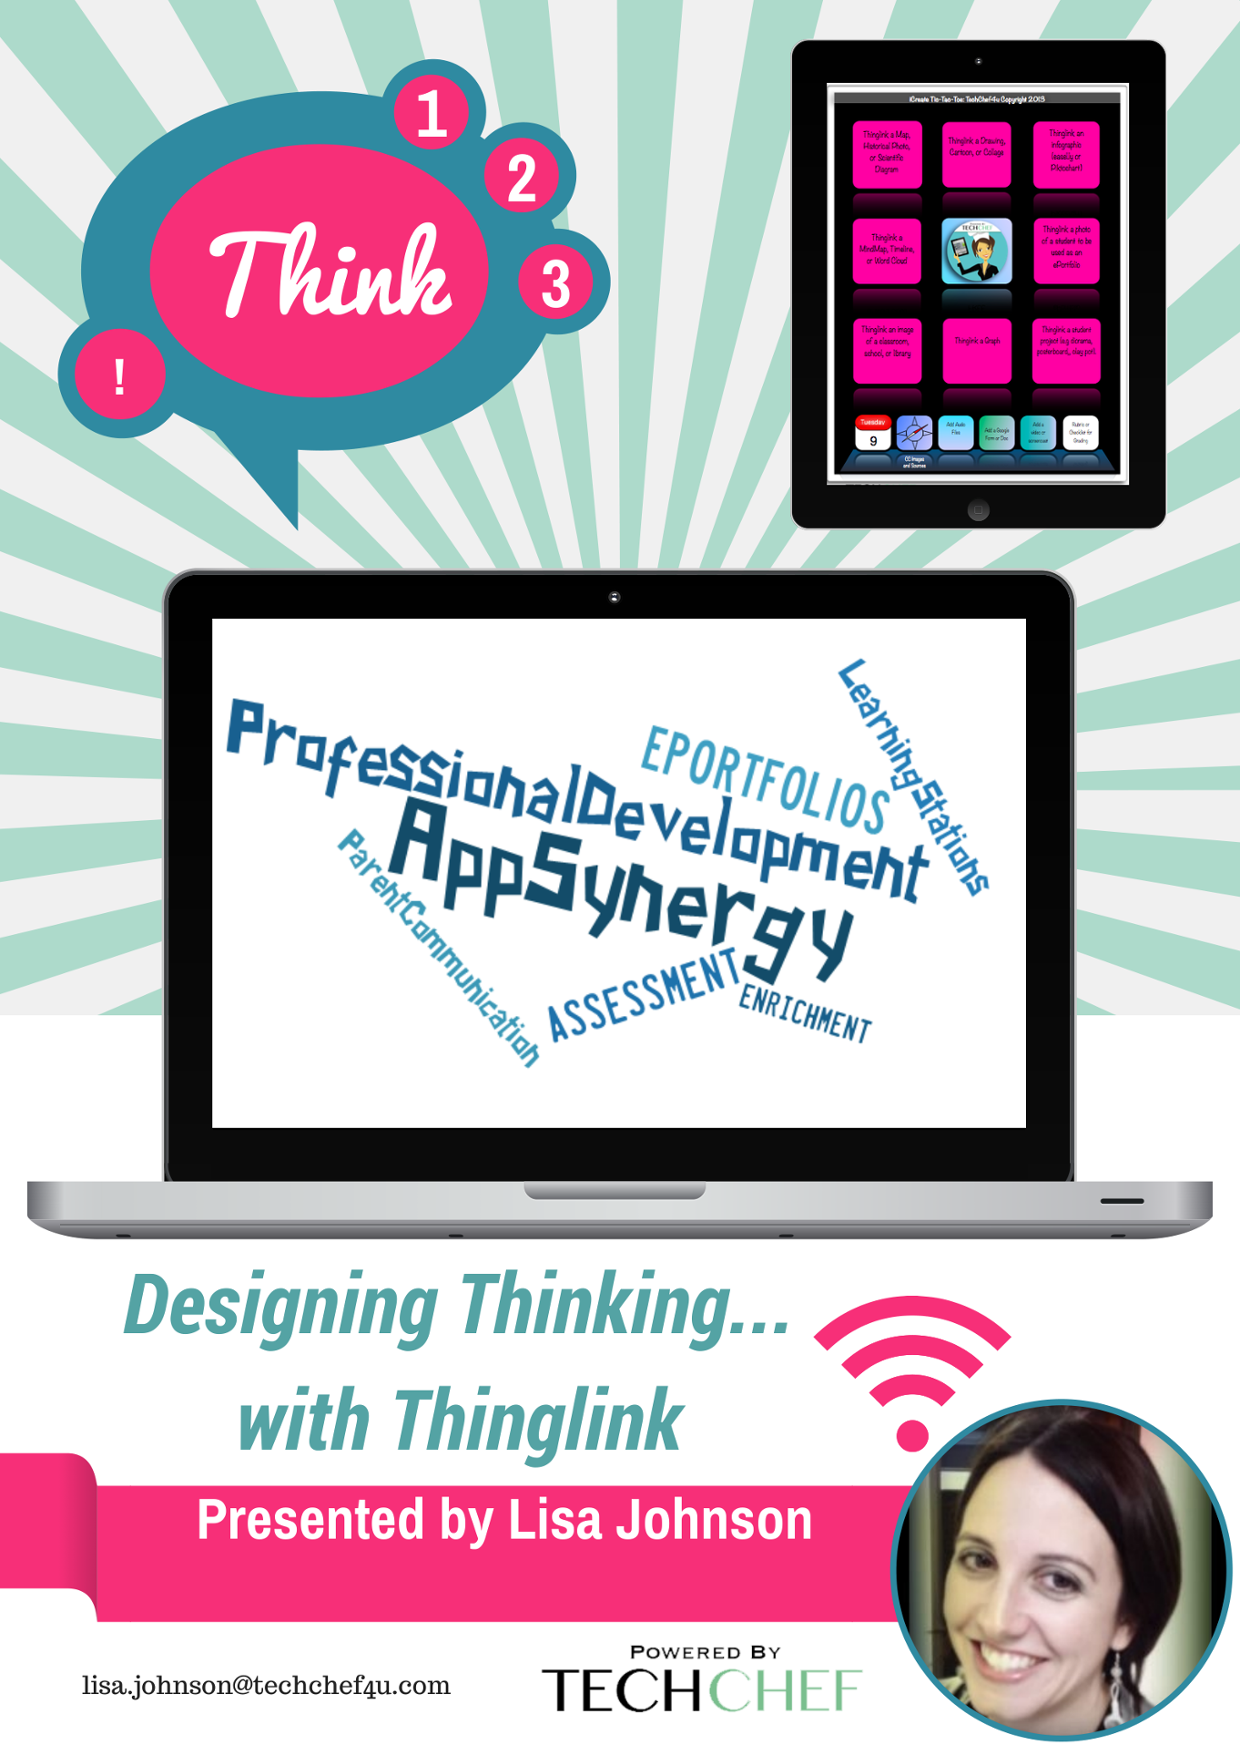 Designing Thinking with Thinglink